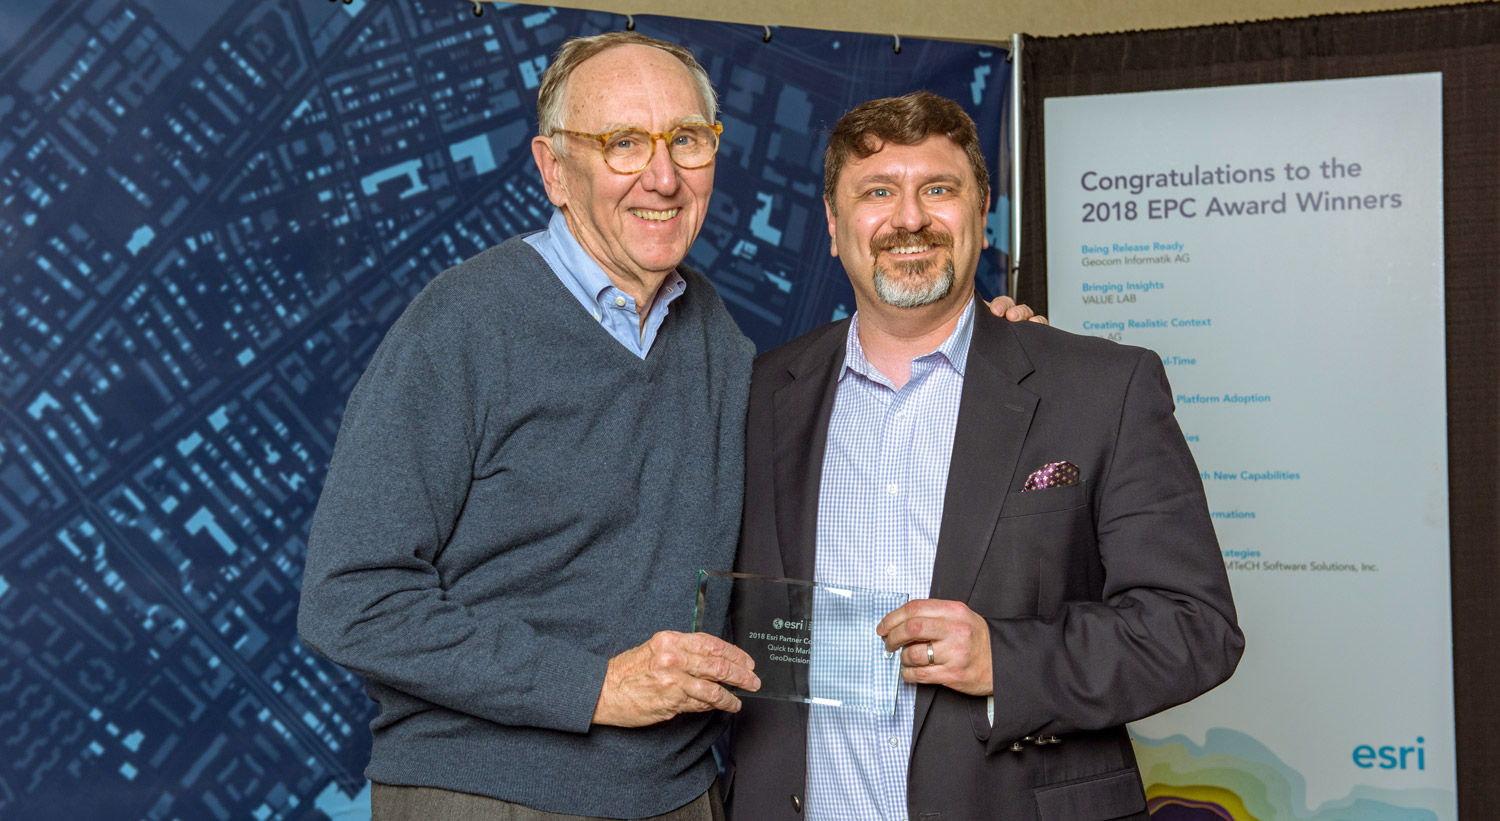 Brendan Wesdock, GeoDecisions CEO receiving the Esri Quick to Market Award from Esri's Founder and President Jack Dangermond.